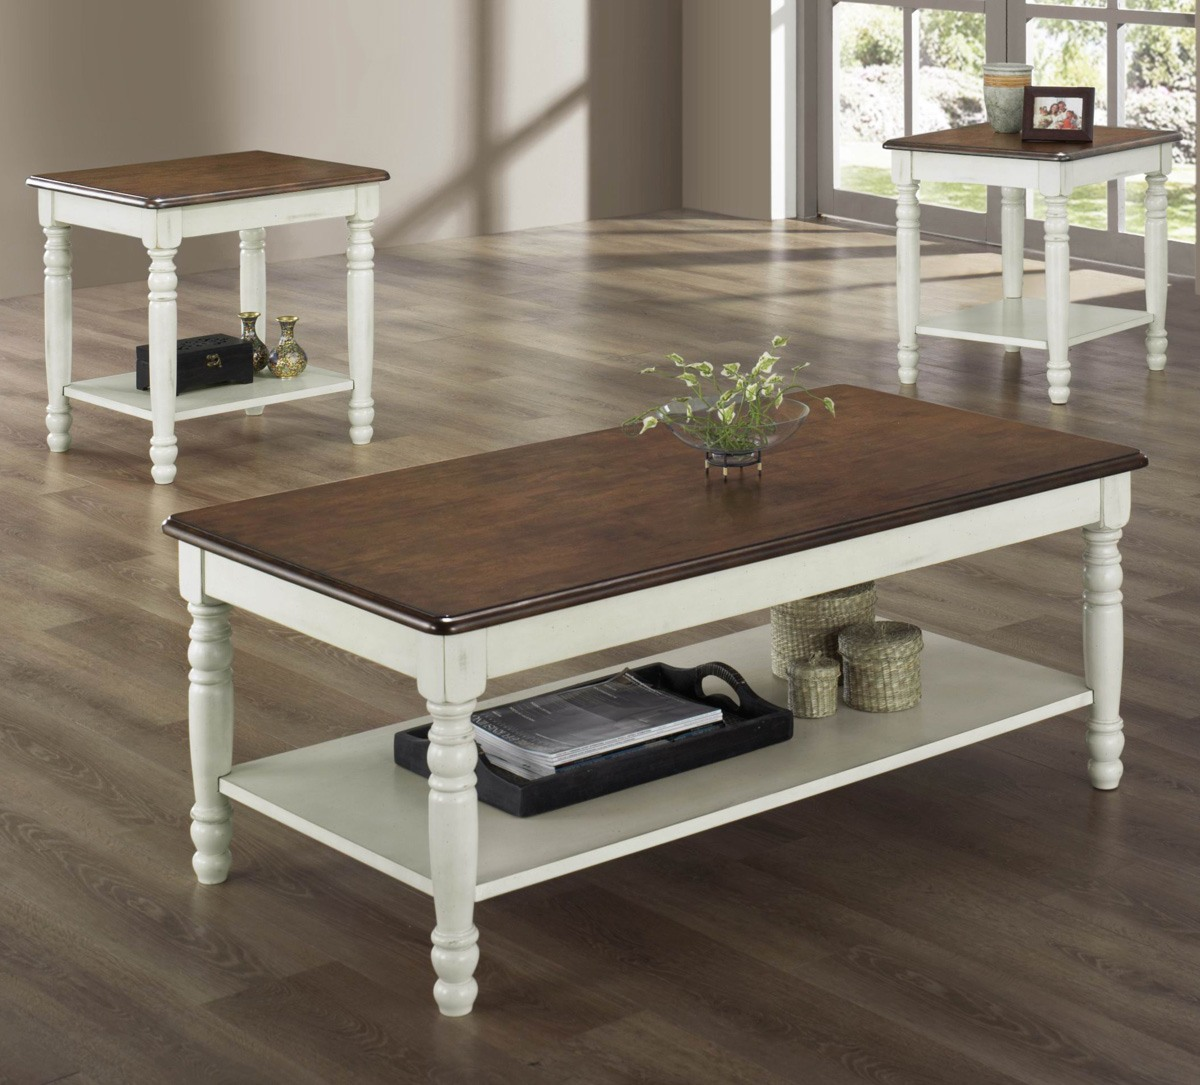 dressing table long end skinny console tables side hallway runner tall bedside dining white small thin chloe accent full size garden and chairs coffee plans glass pedestal couch